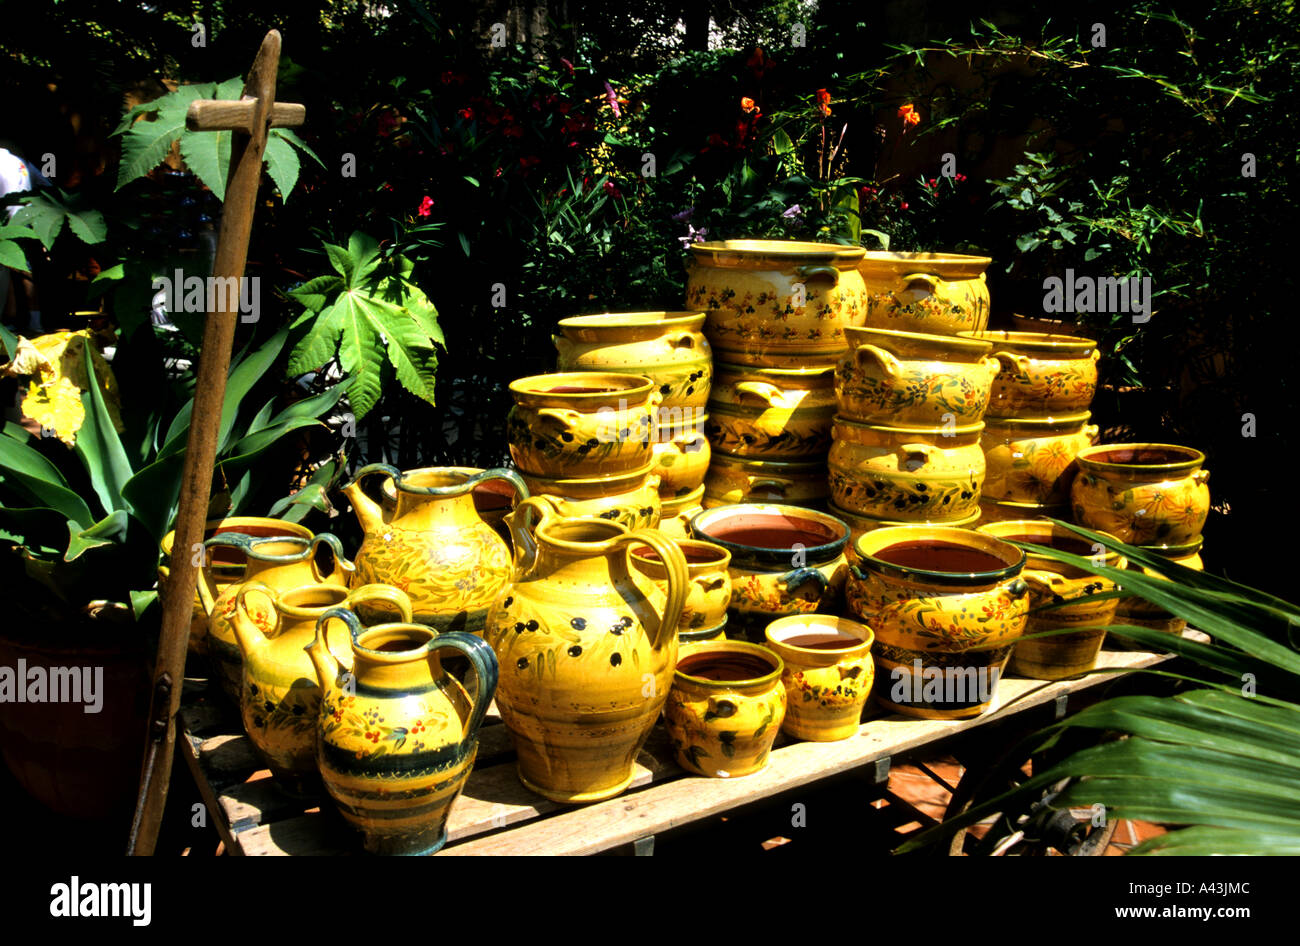 Provence France French Pottery tableware & Provence France French Pottery tableware Stock Photo: 6241483 - Alamy